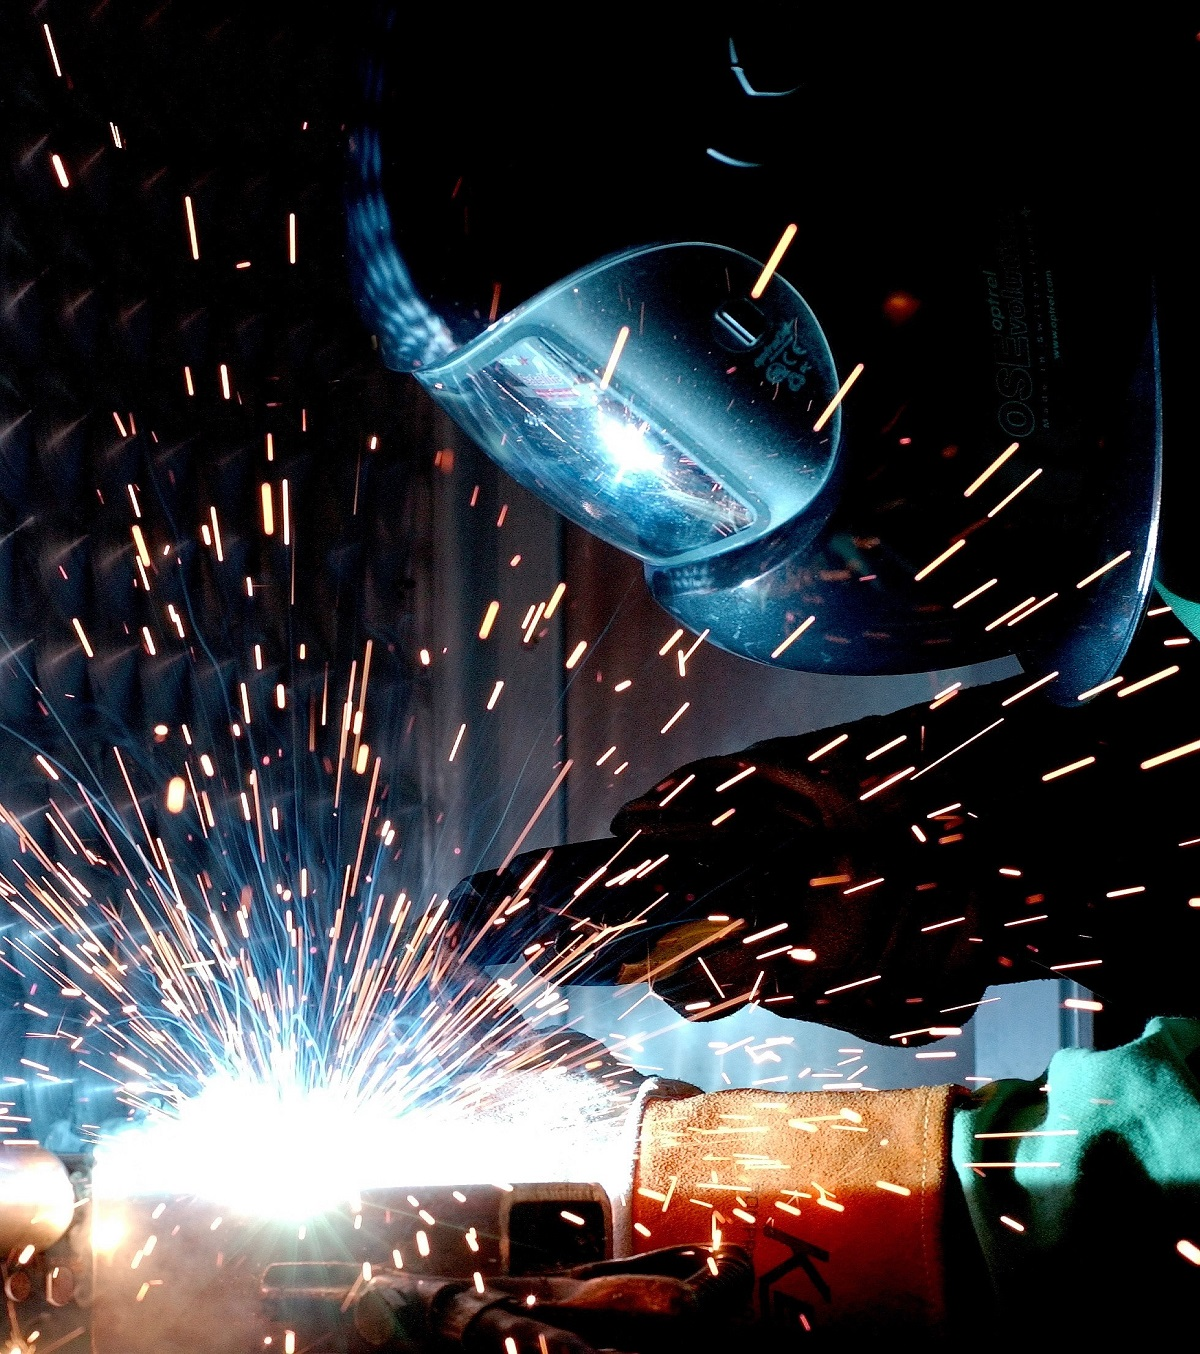 welder working in a construction site